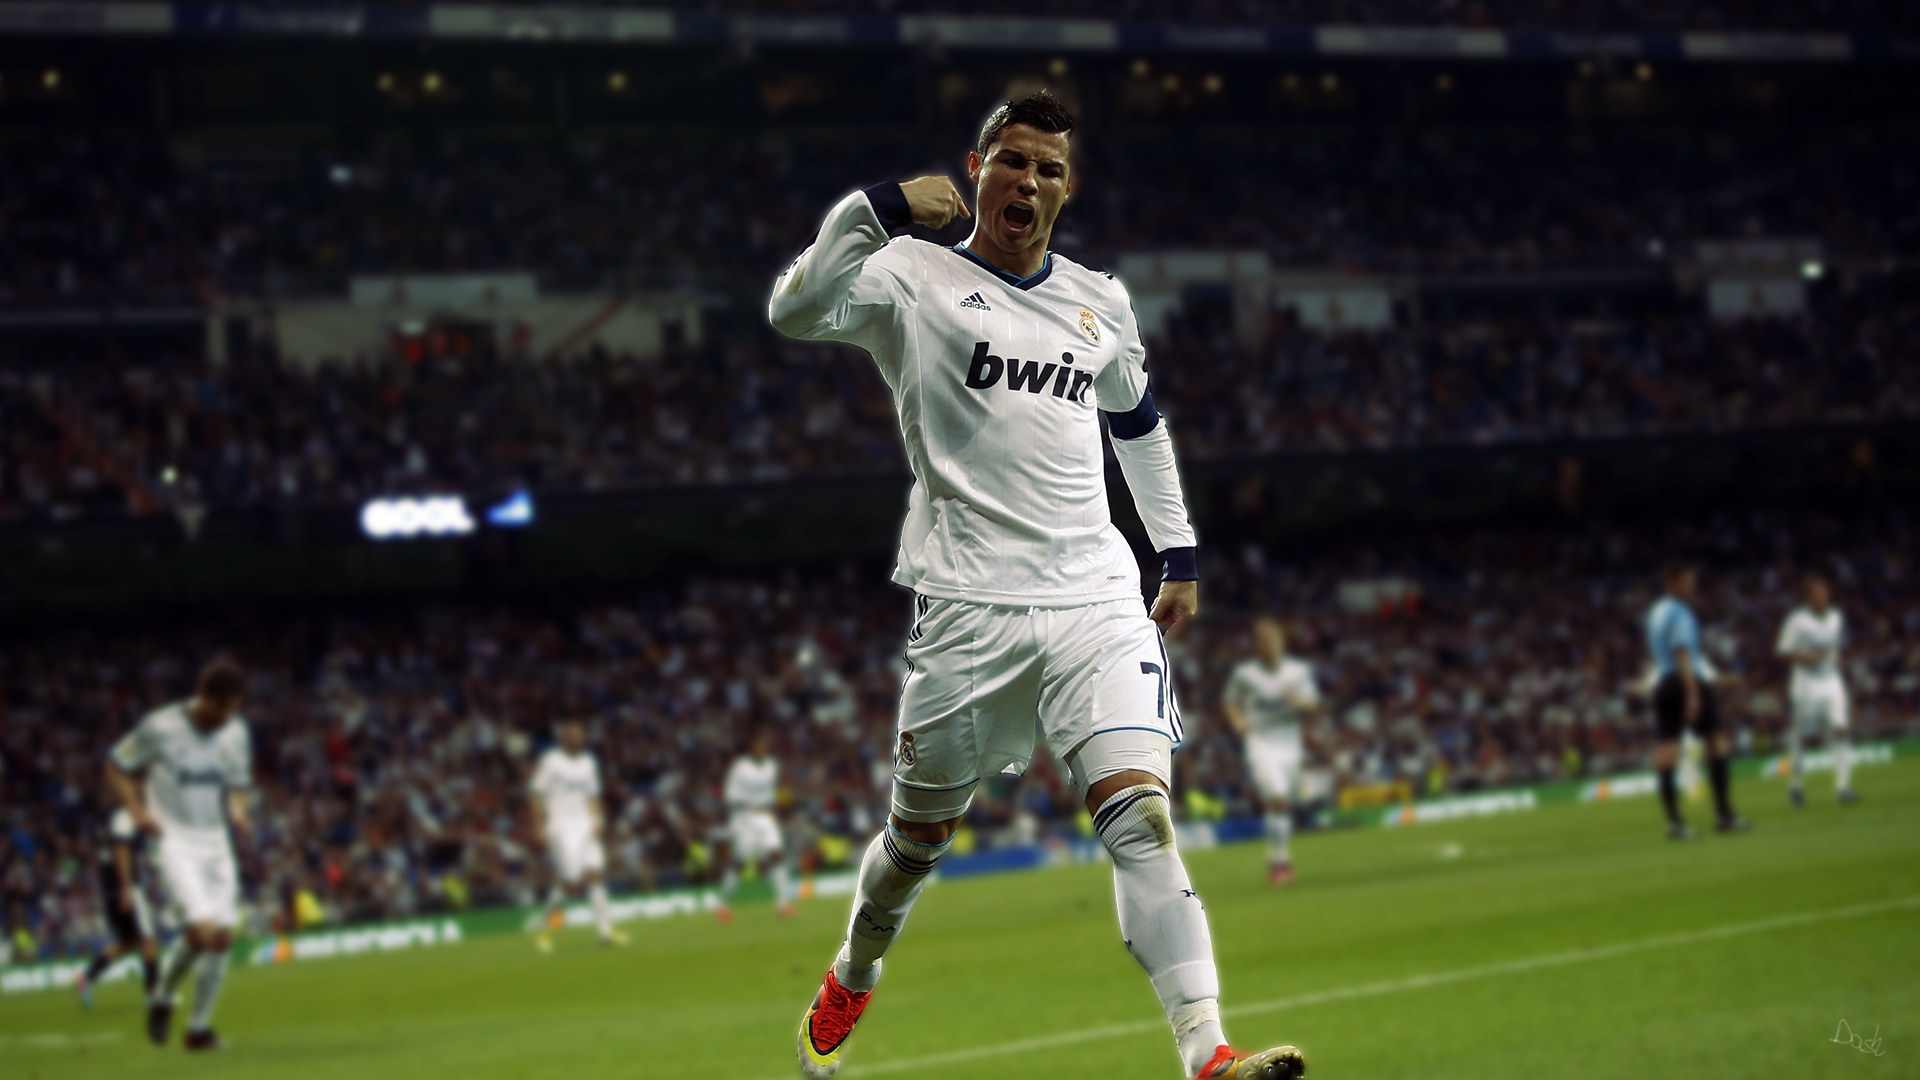 Download free hd p wallpapers of cristiano ronaldo hd wallpapers download free hd p wallpapers of cristiano ronaldo voltagebd Image collections